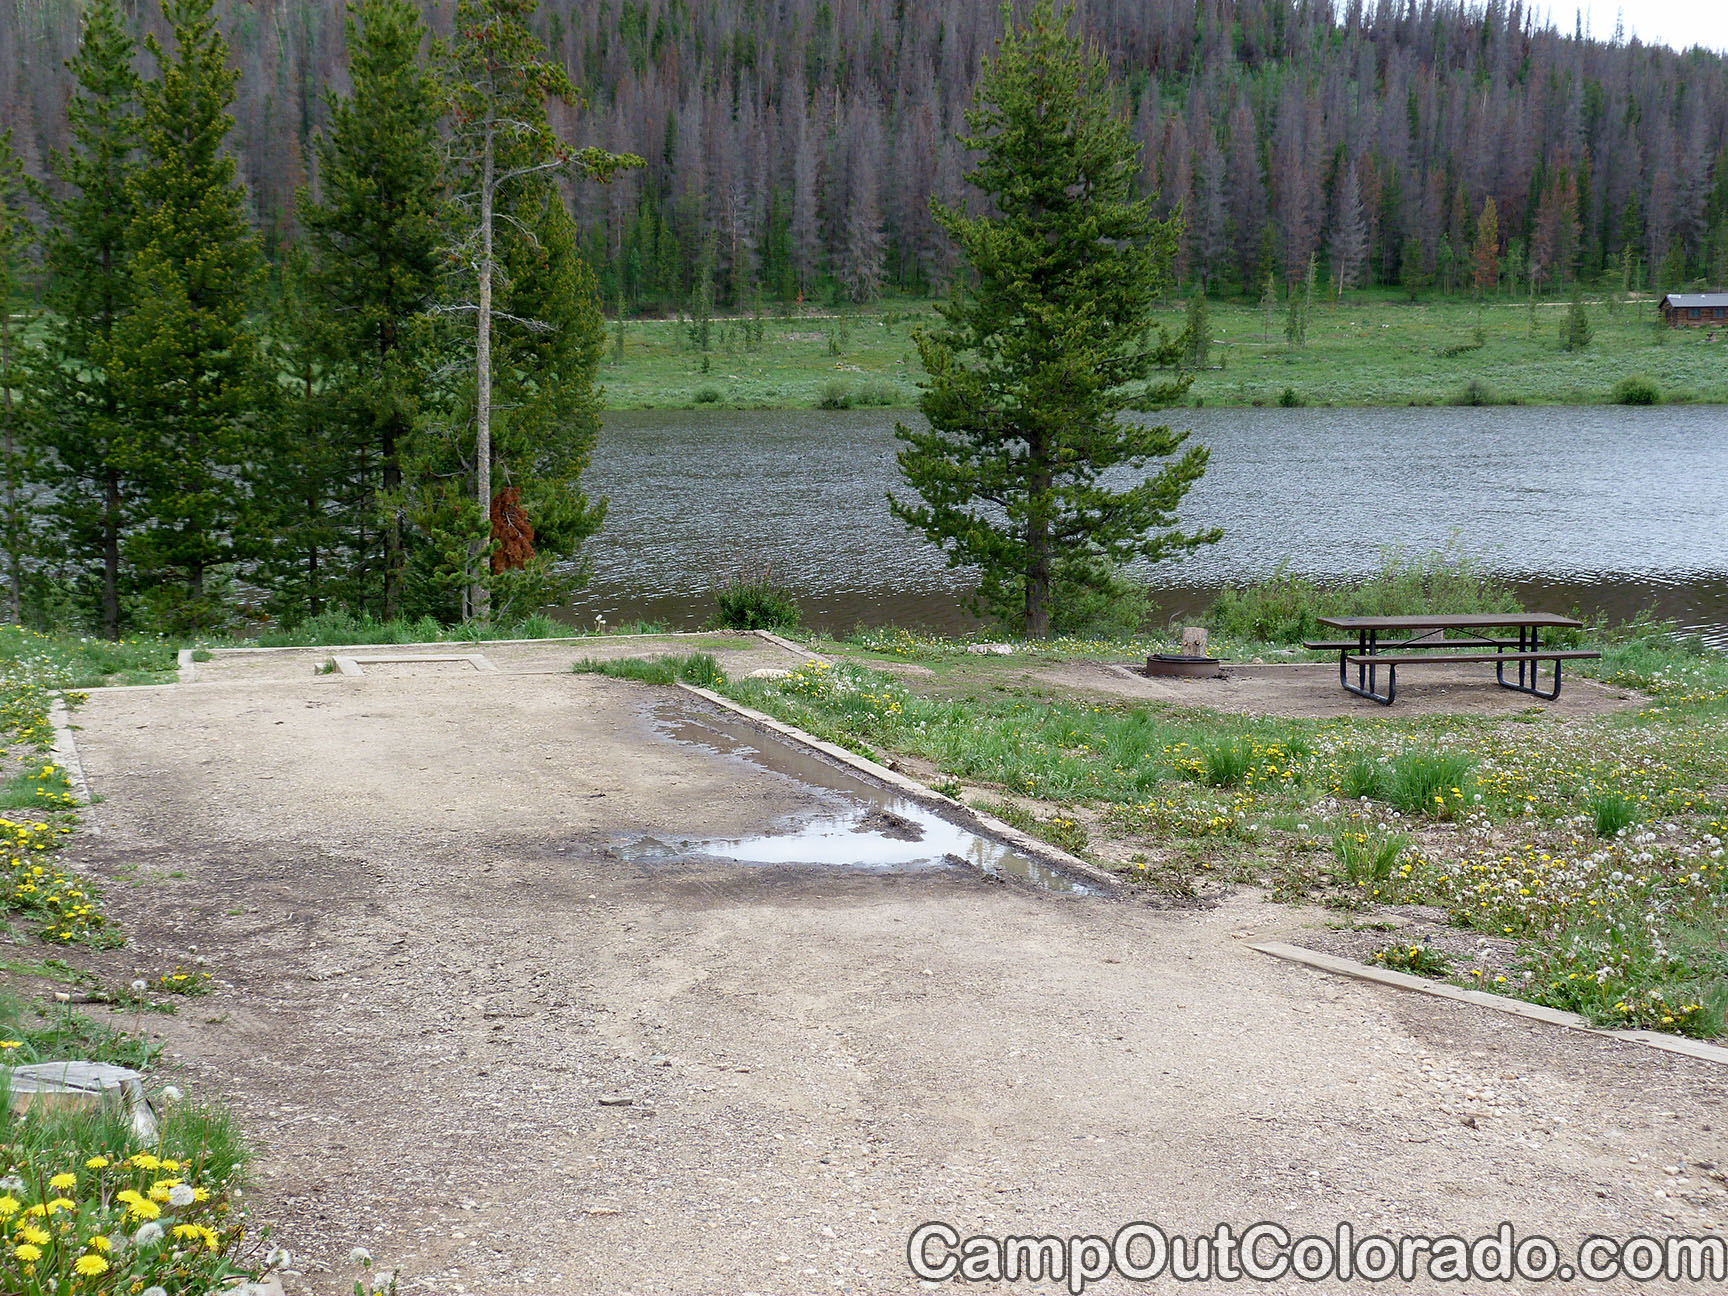 Campoutcolorado-north-michigan-reservoir-campground-long-drive-campsite